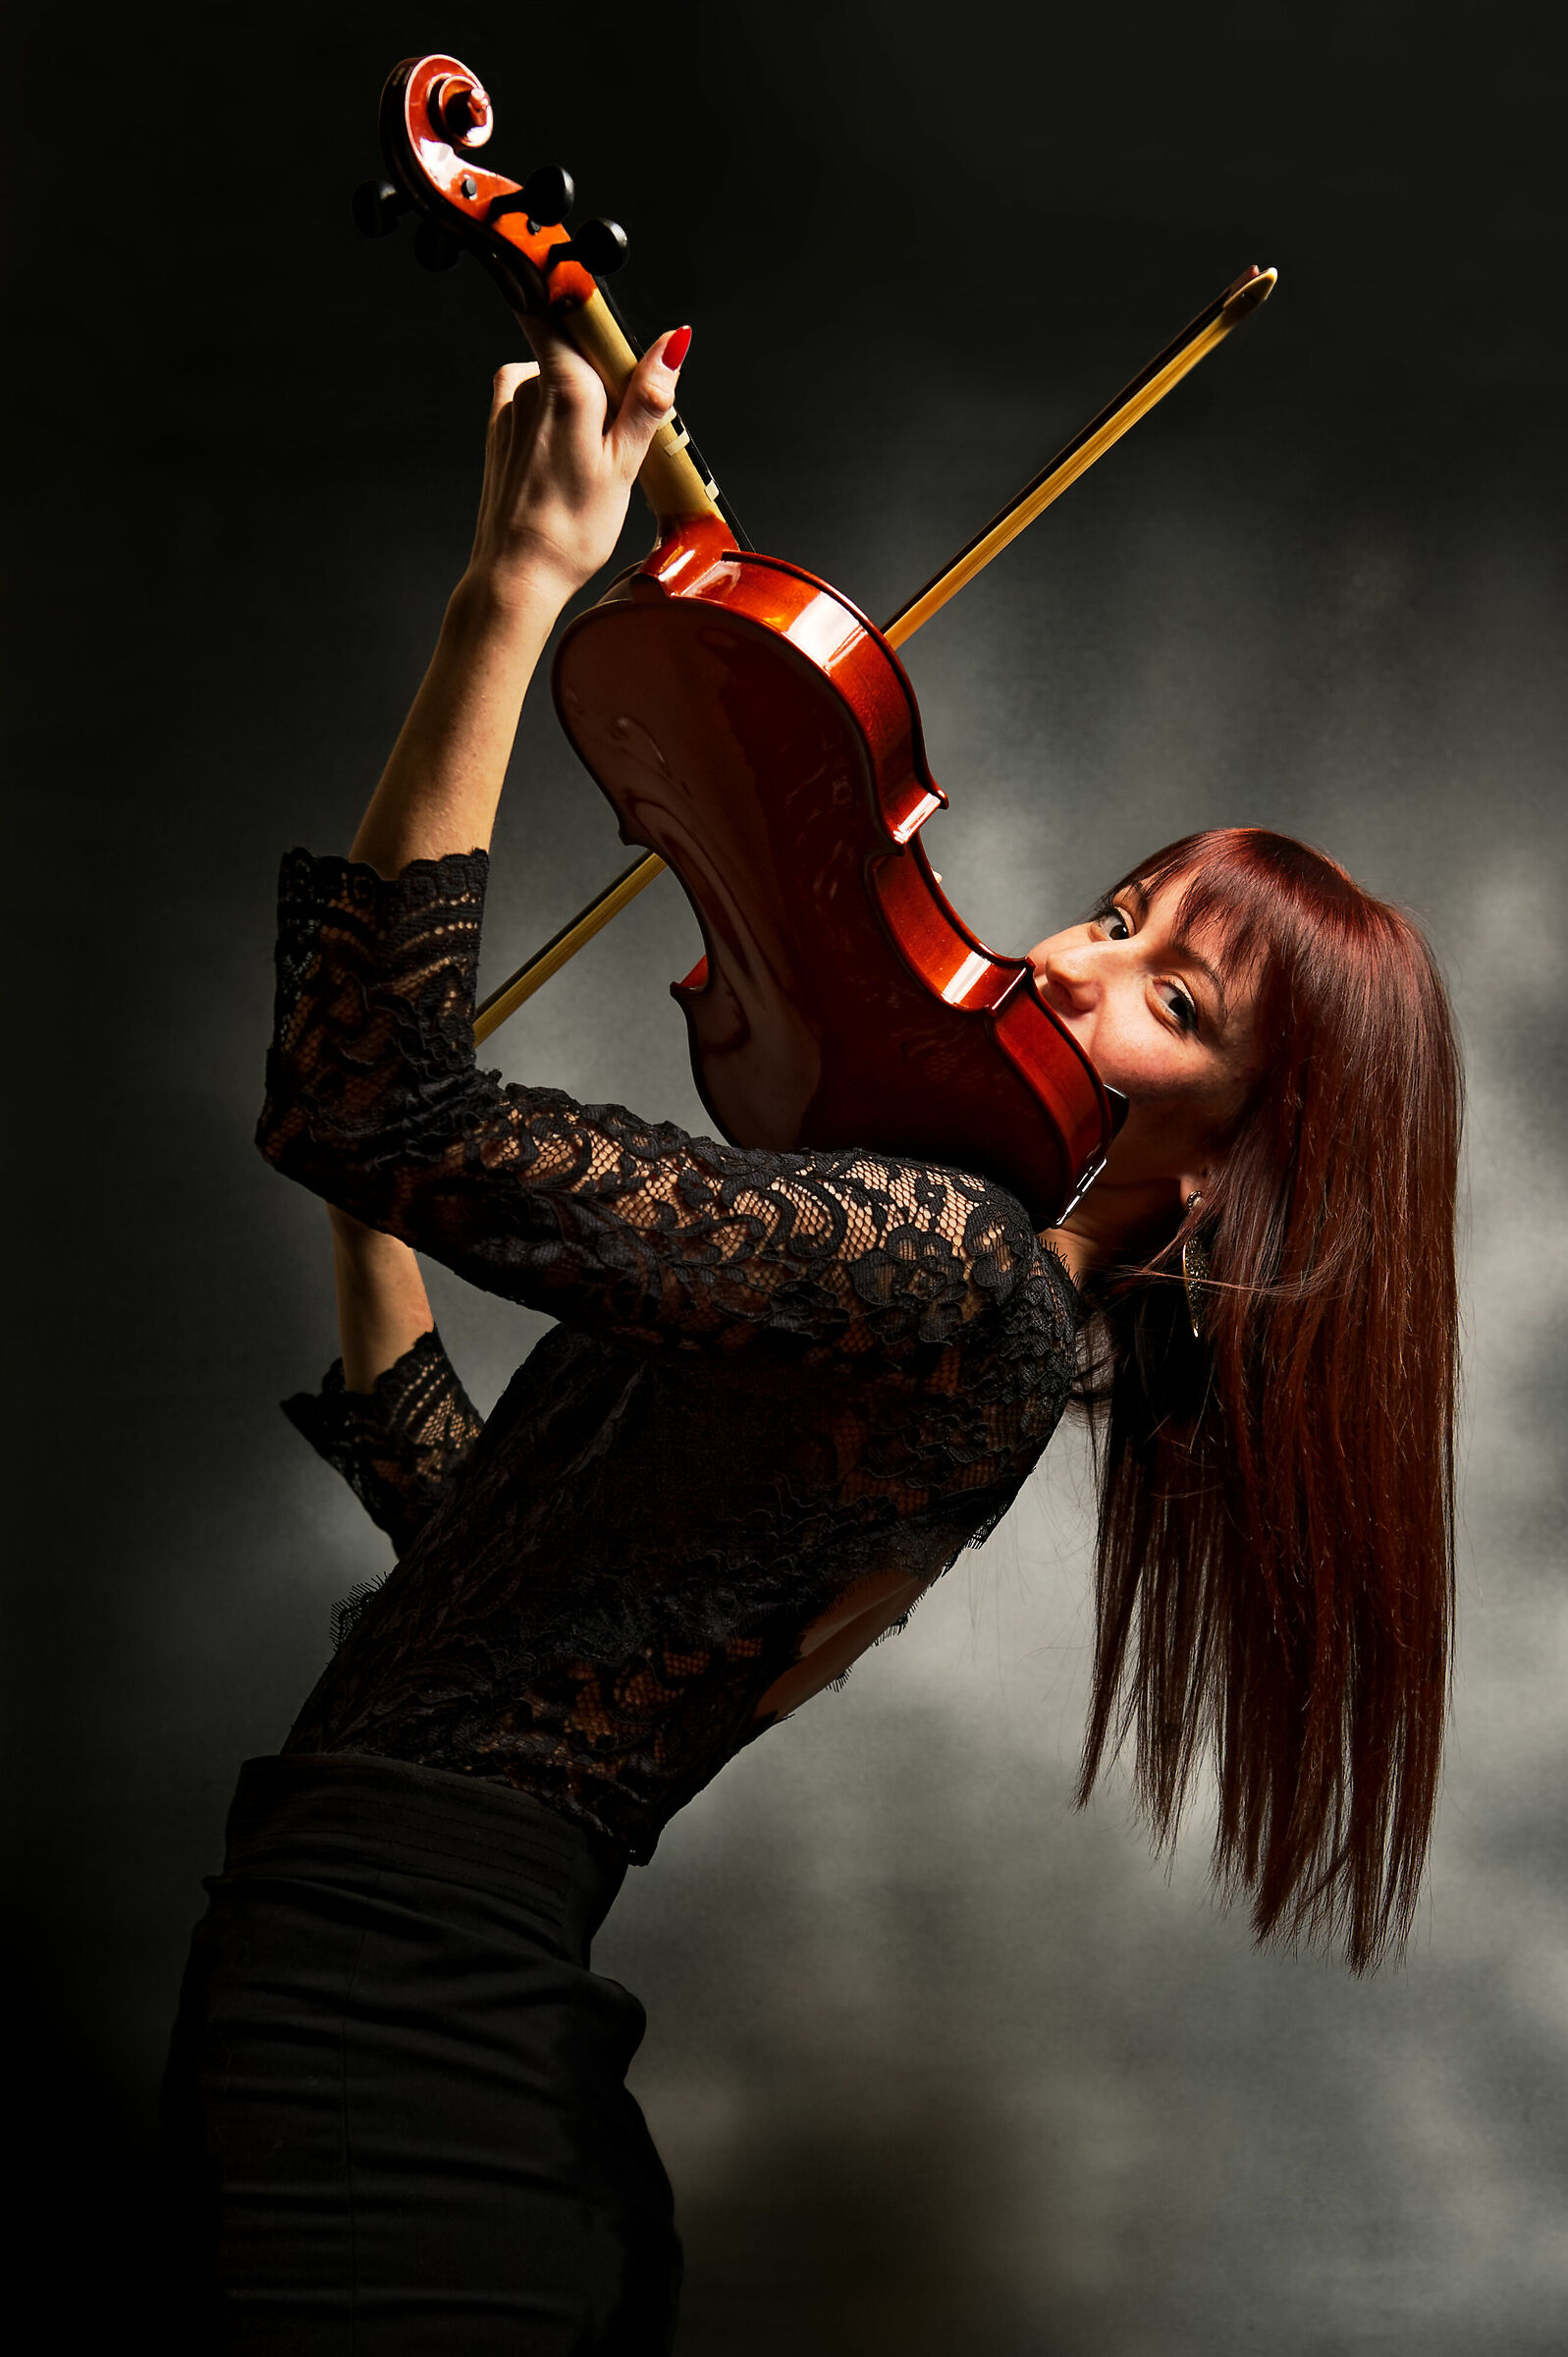 The Violinist...